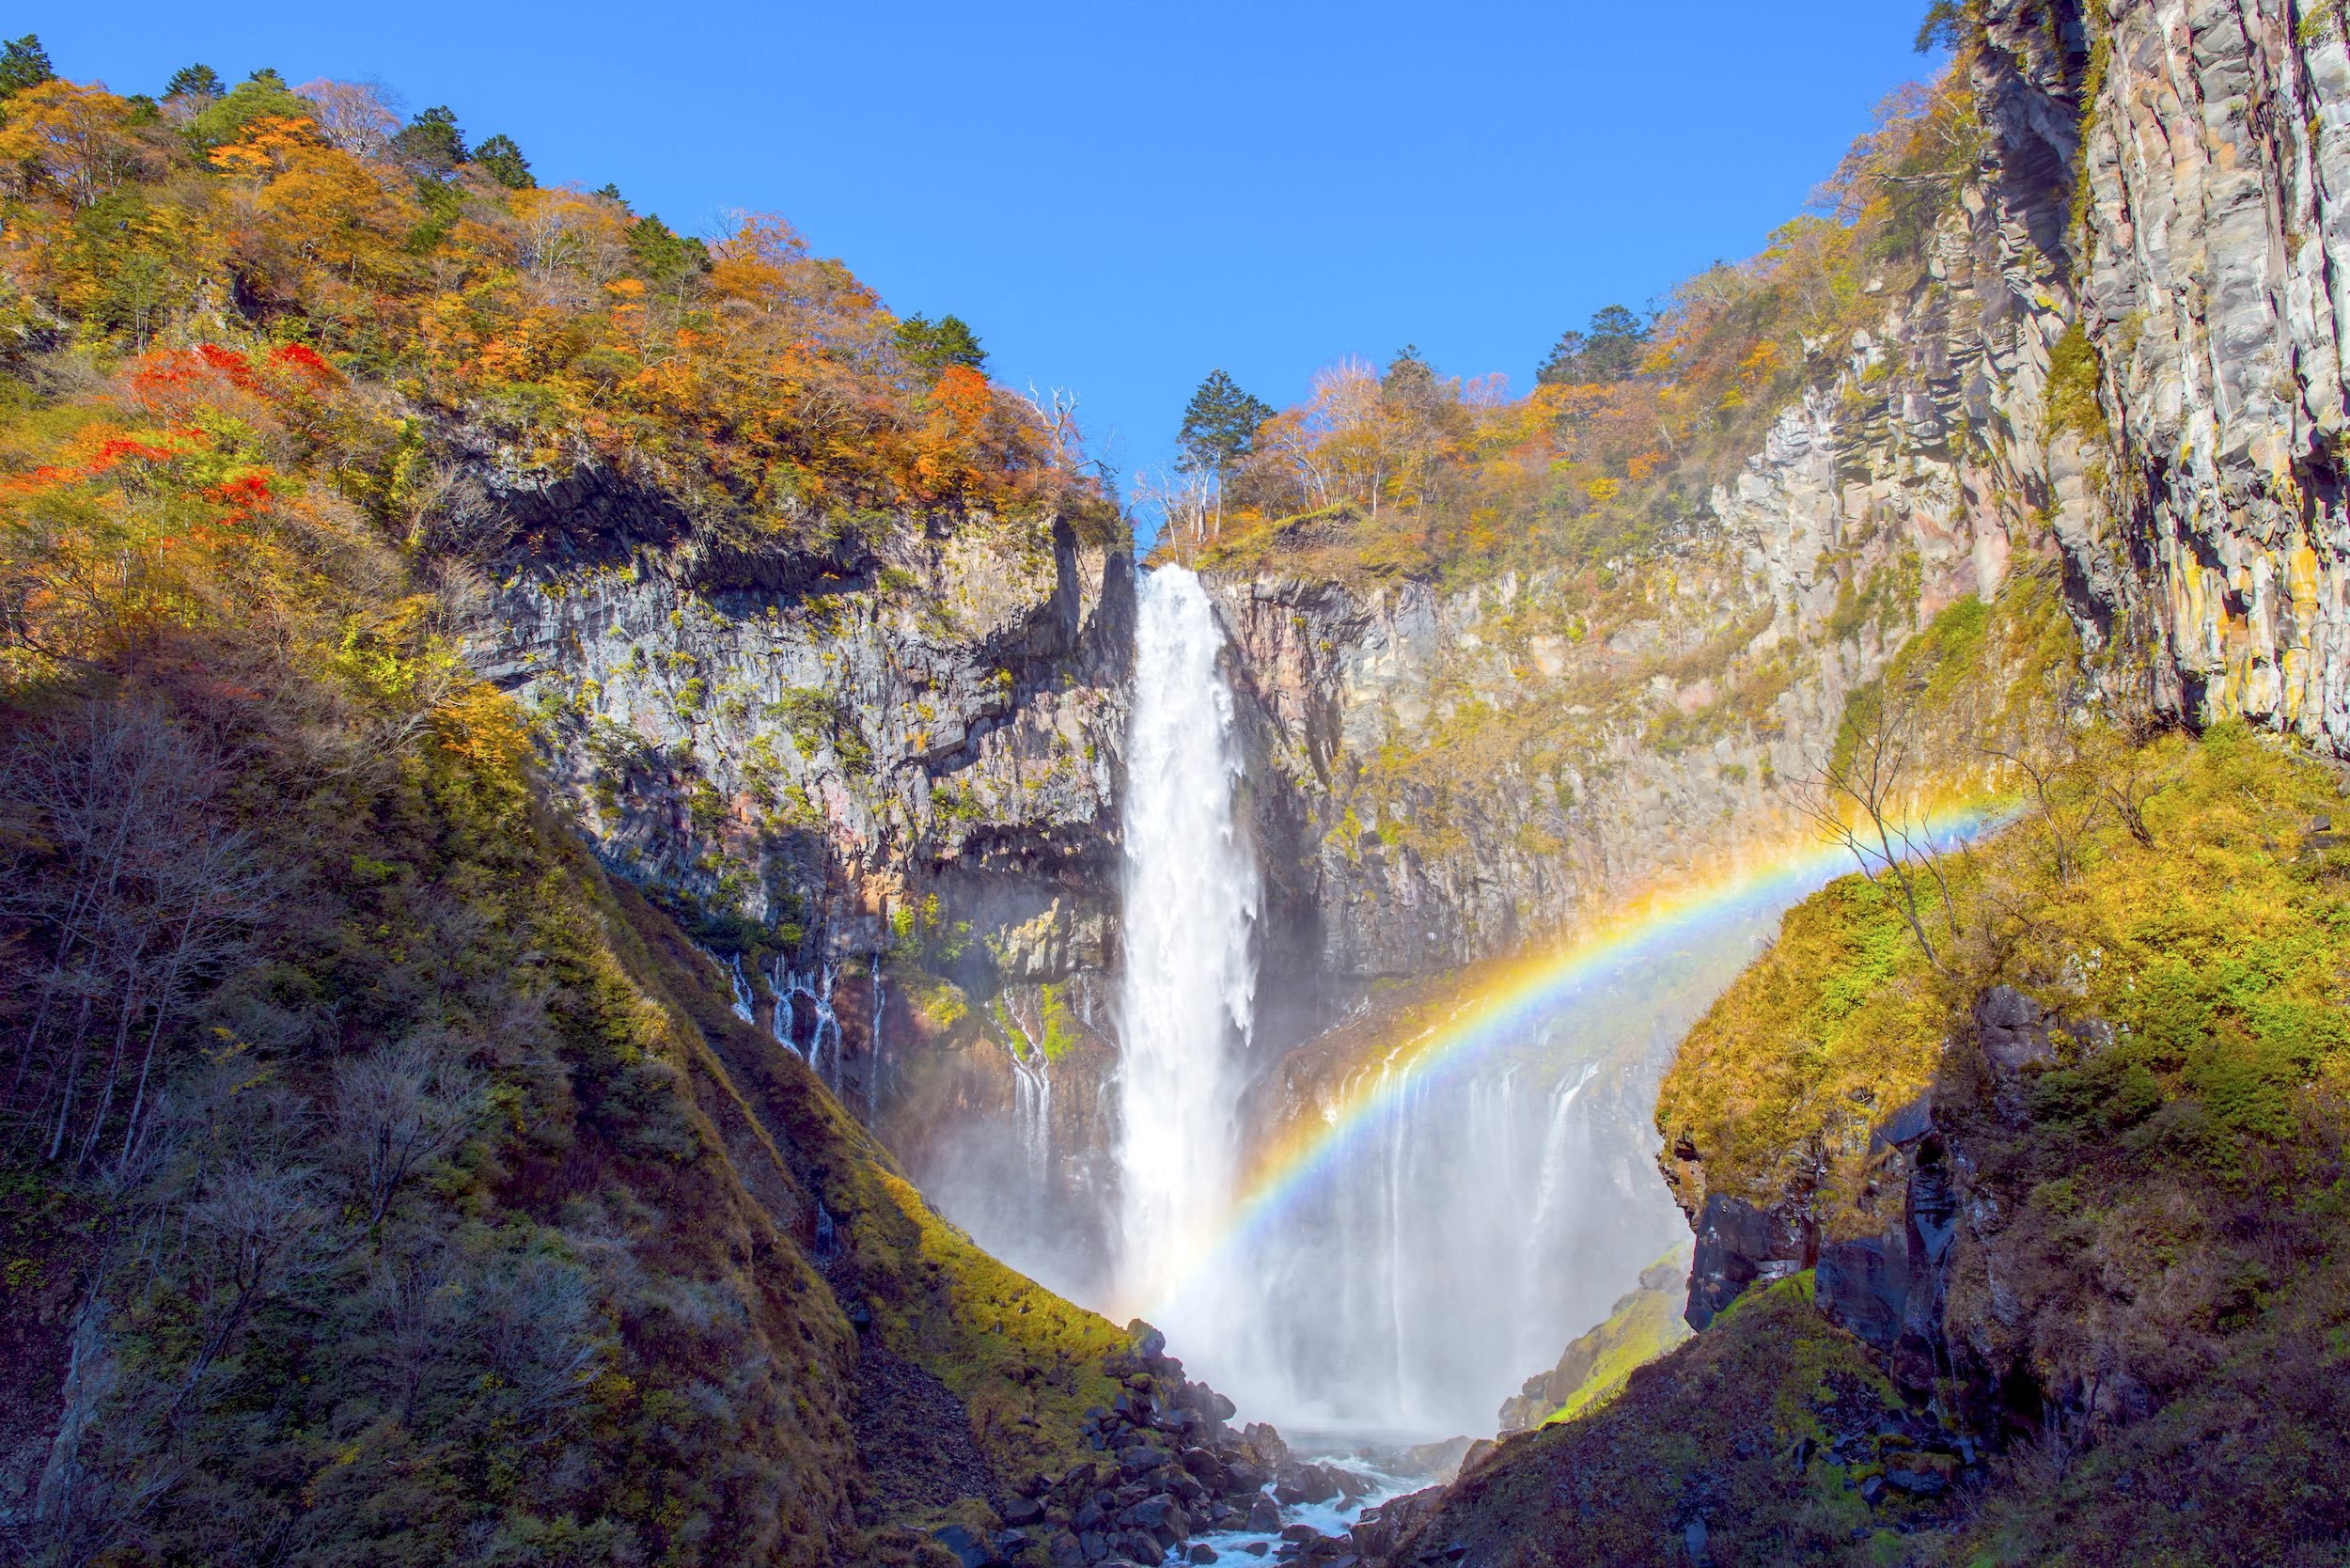 The Kegon Falls in Nikko is one of Japan's top three waterfalls.